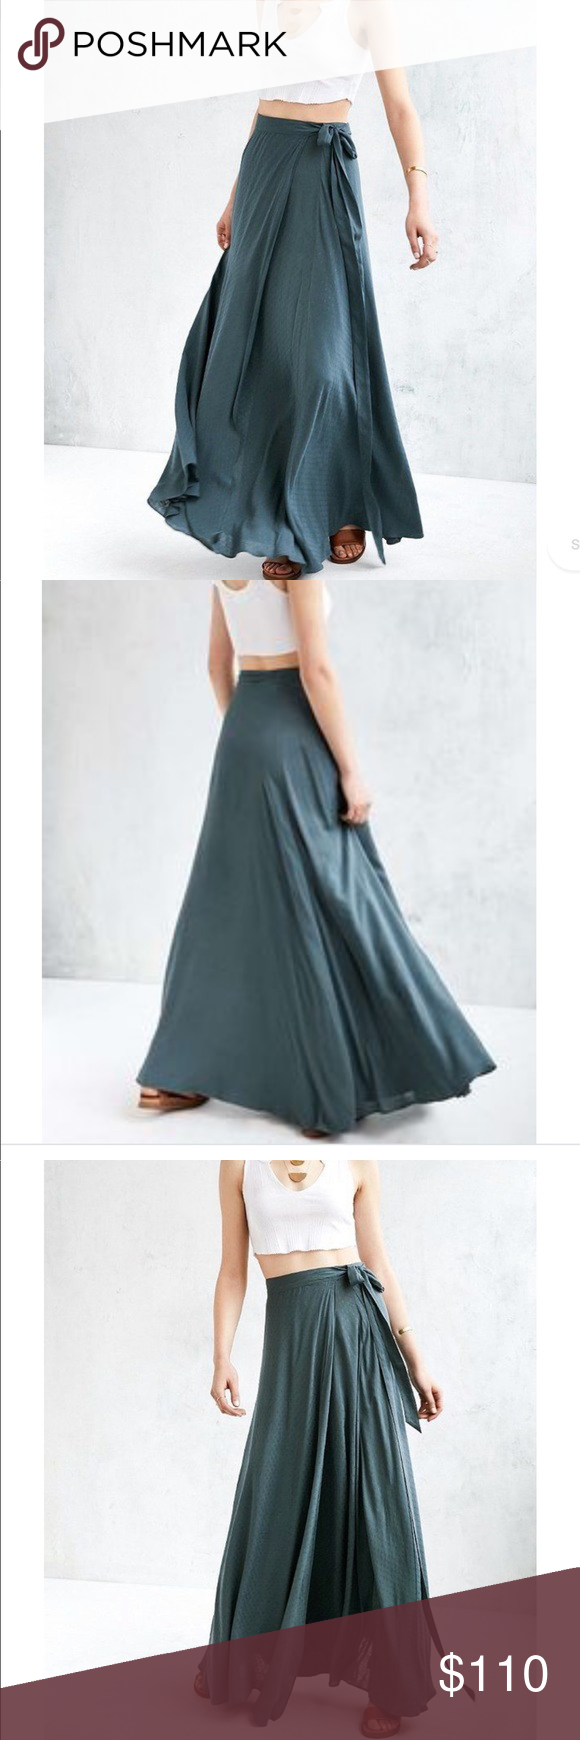 1c7aaf056c4a UO Ecote Zella Boho Wrap Skirt Gorgeous, blue maxi wrap skirt by Ecote.  Meant to be worn higher on the waist. Size small but since it is a wrap  skirt it ...